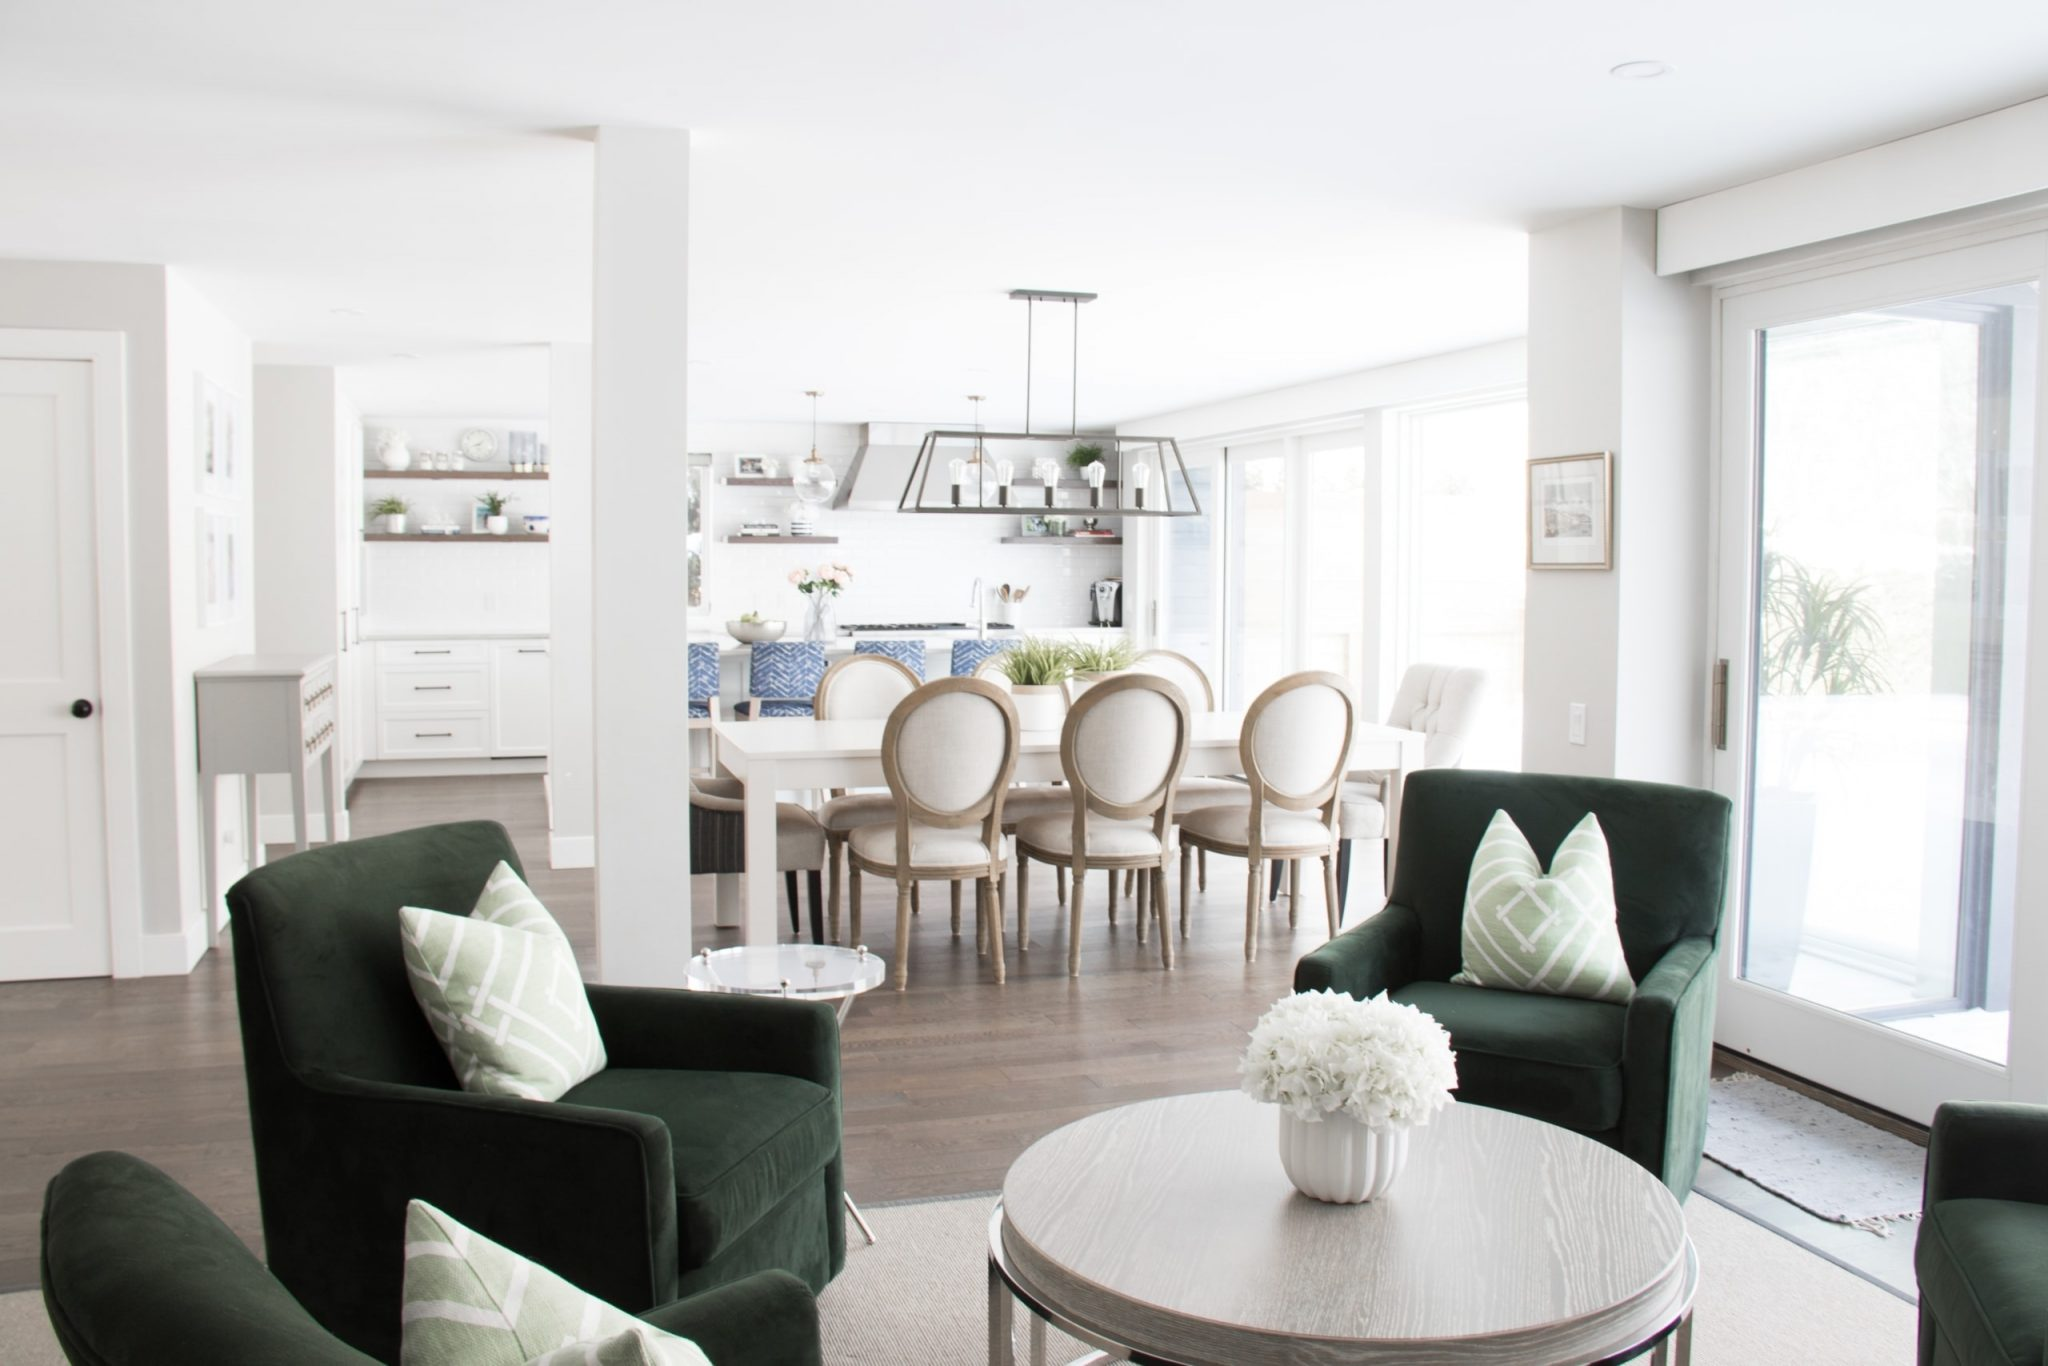 Living room, dining room and kitchen open concept